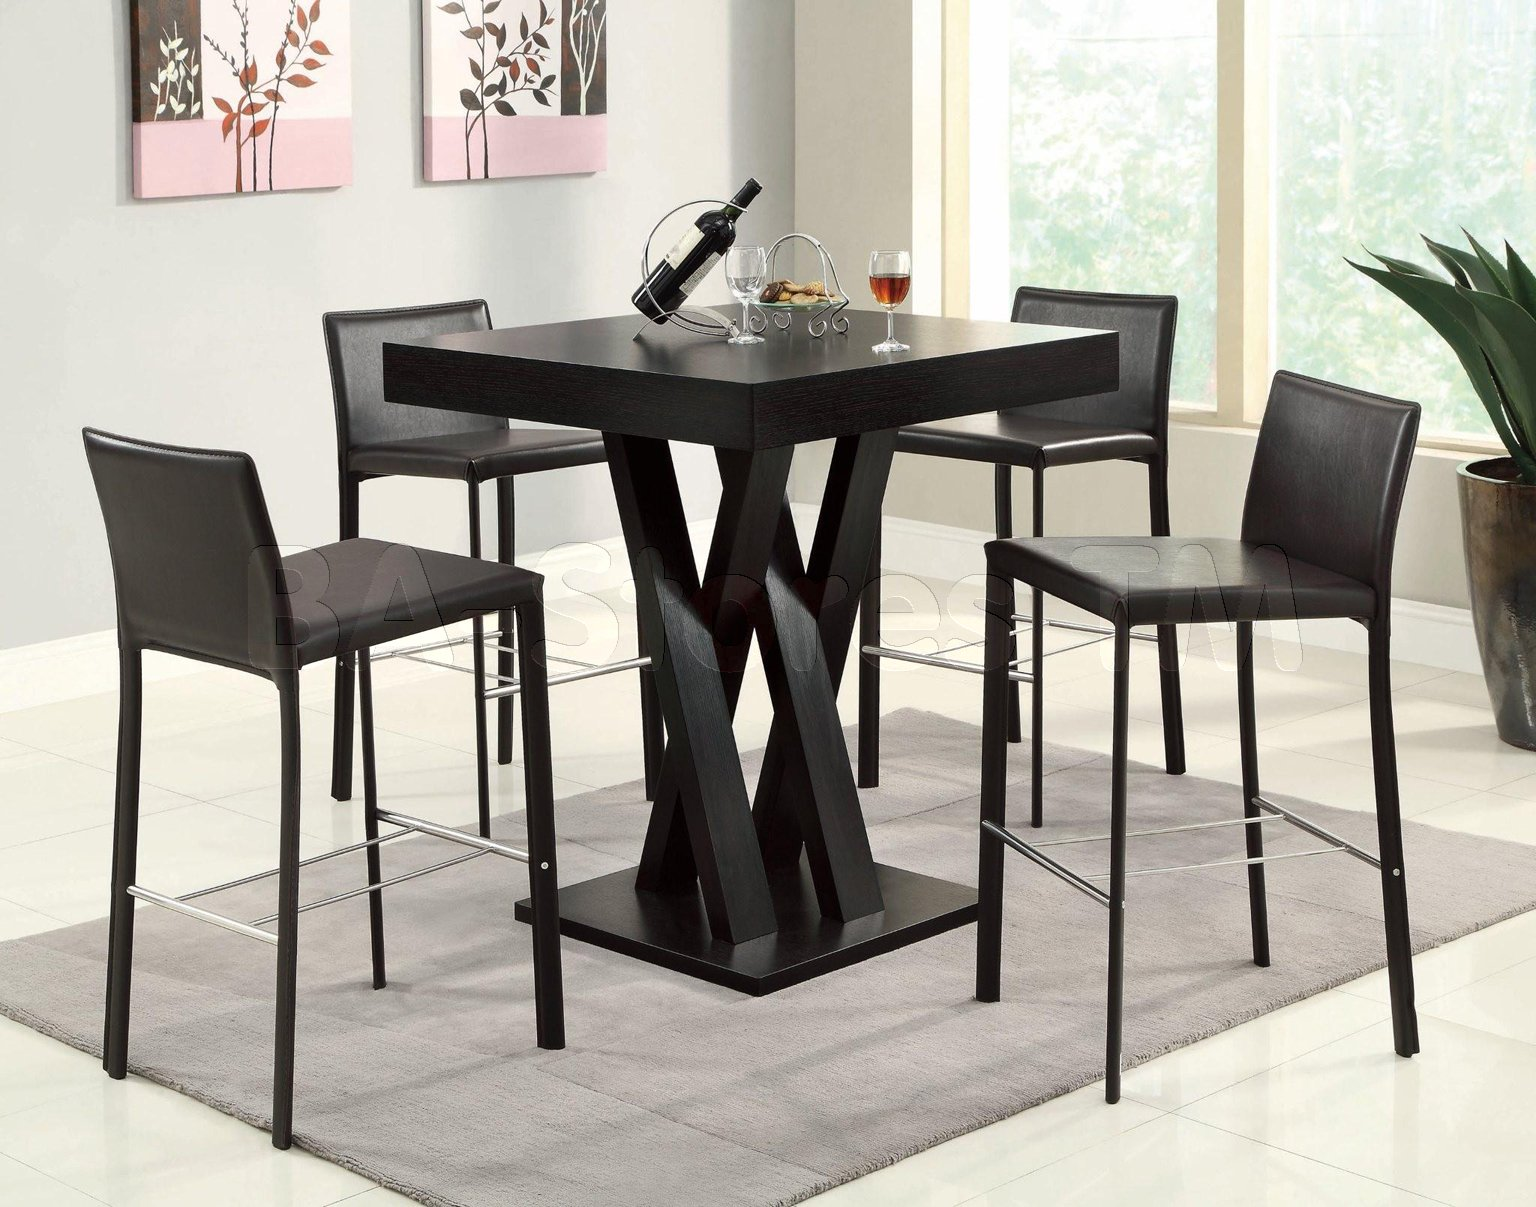 Kitchen Bar Stool Table Set